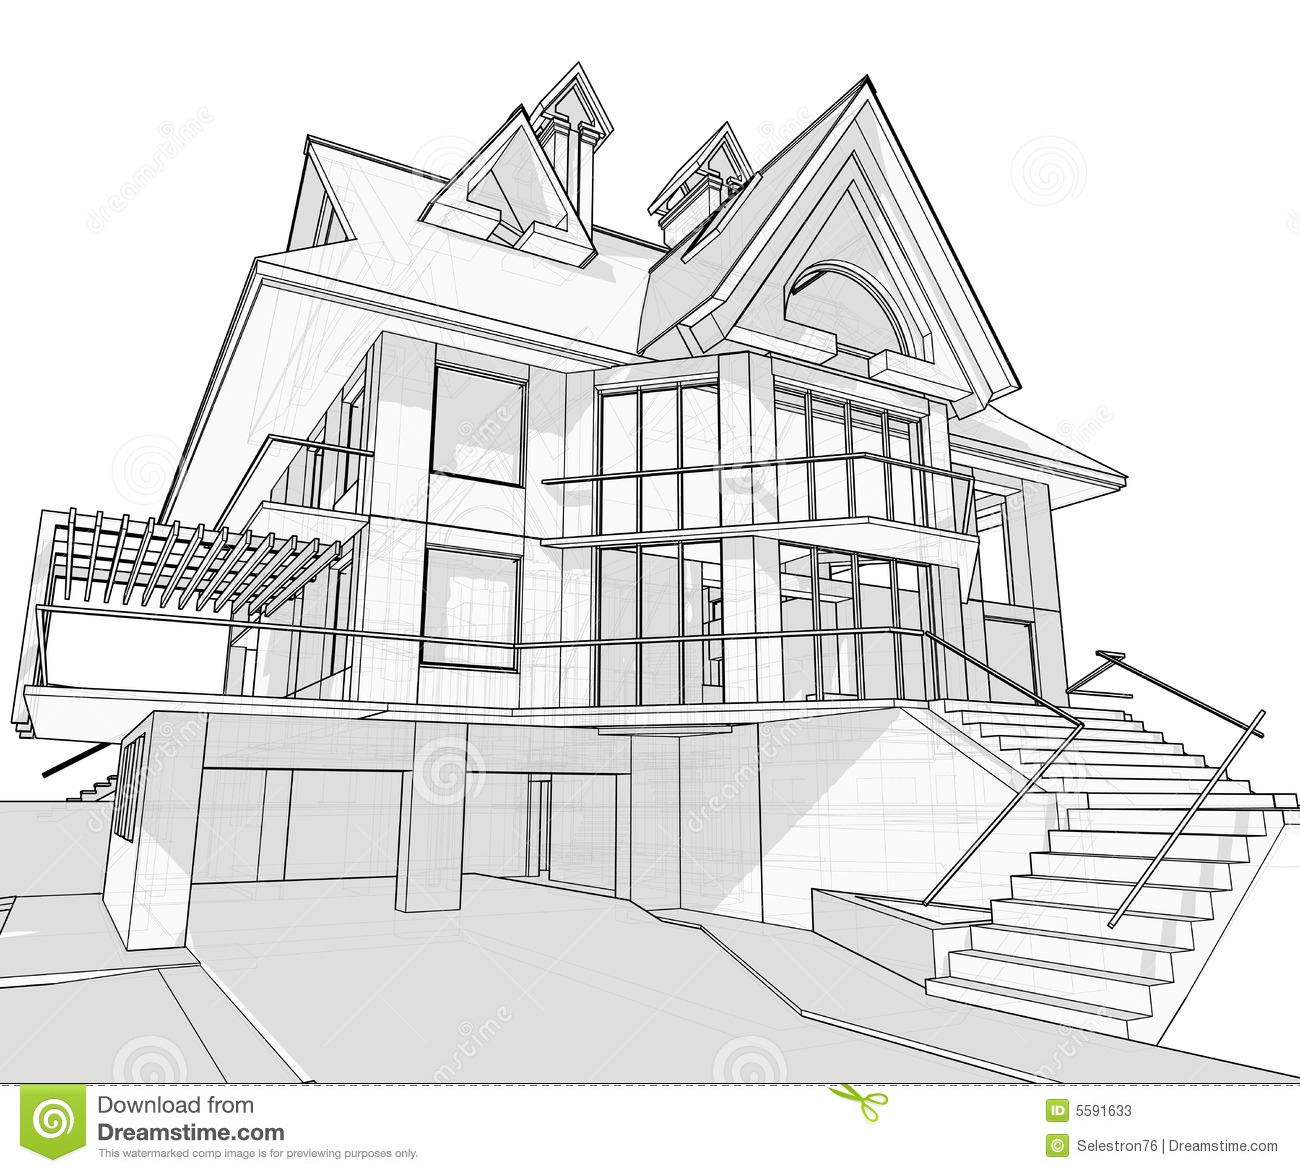 Architecture Houses Drawings Beautifule Homes Plans Blueprints On